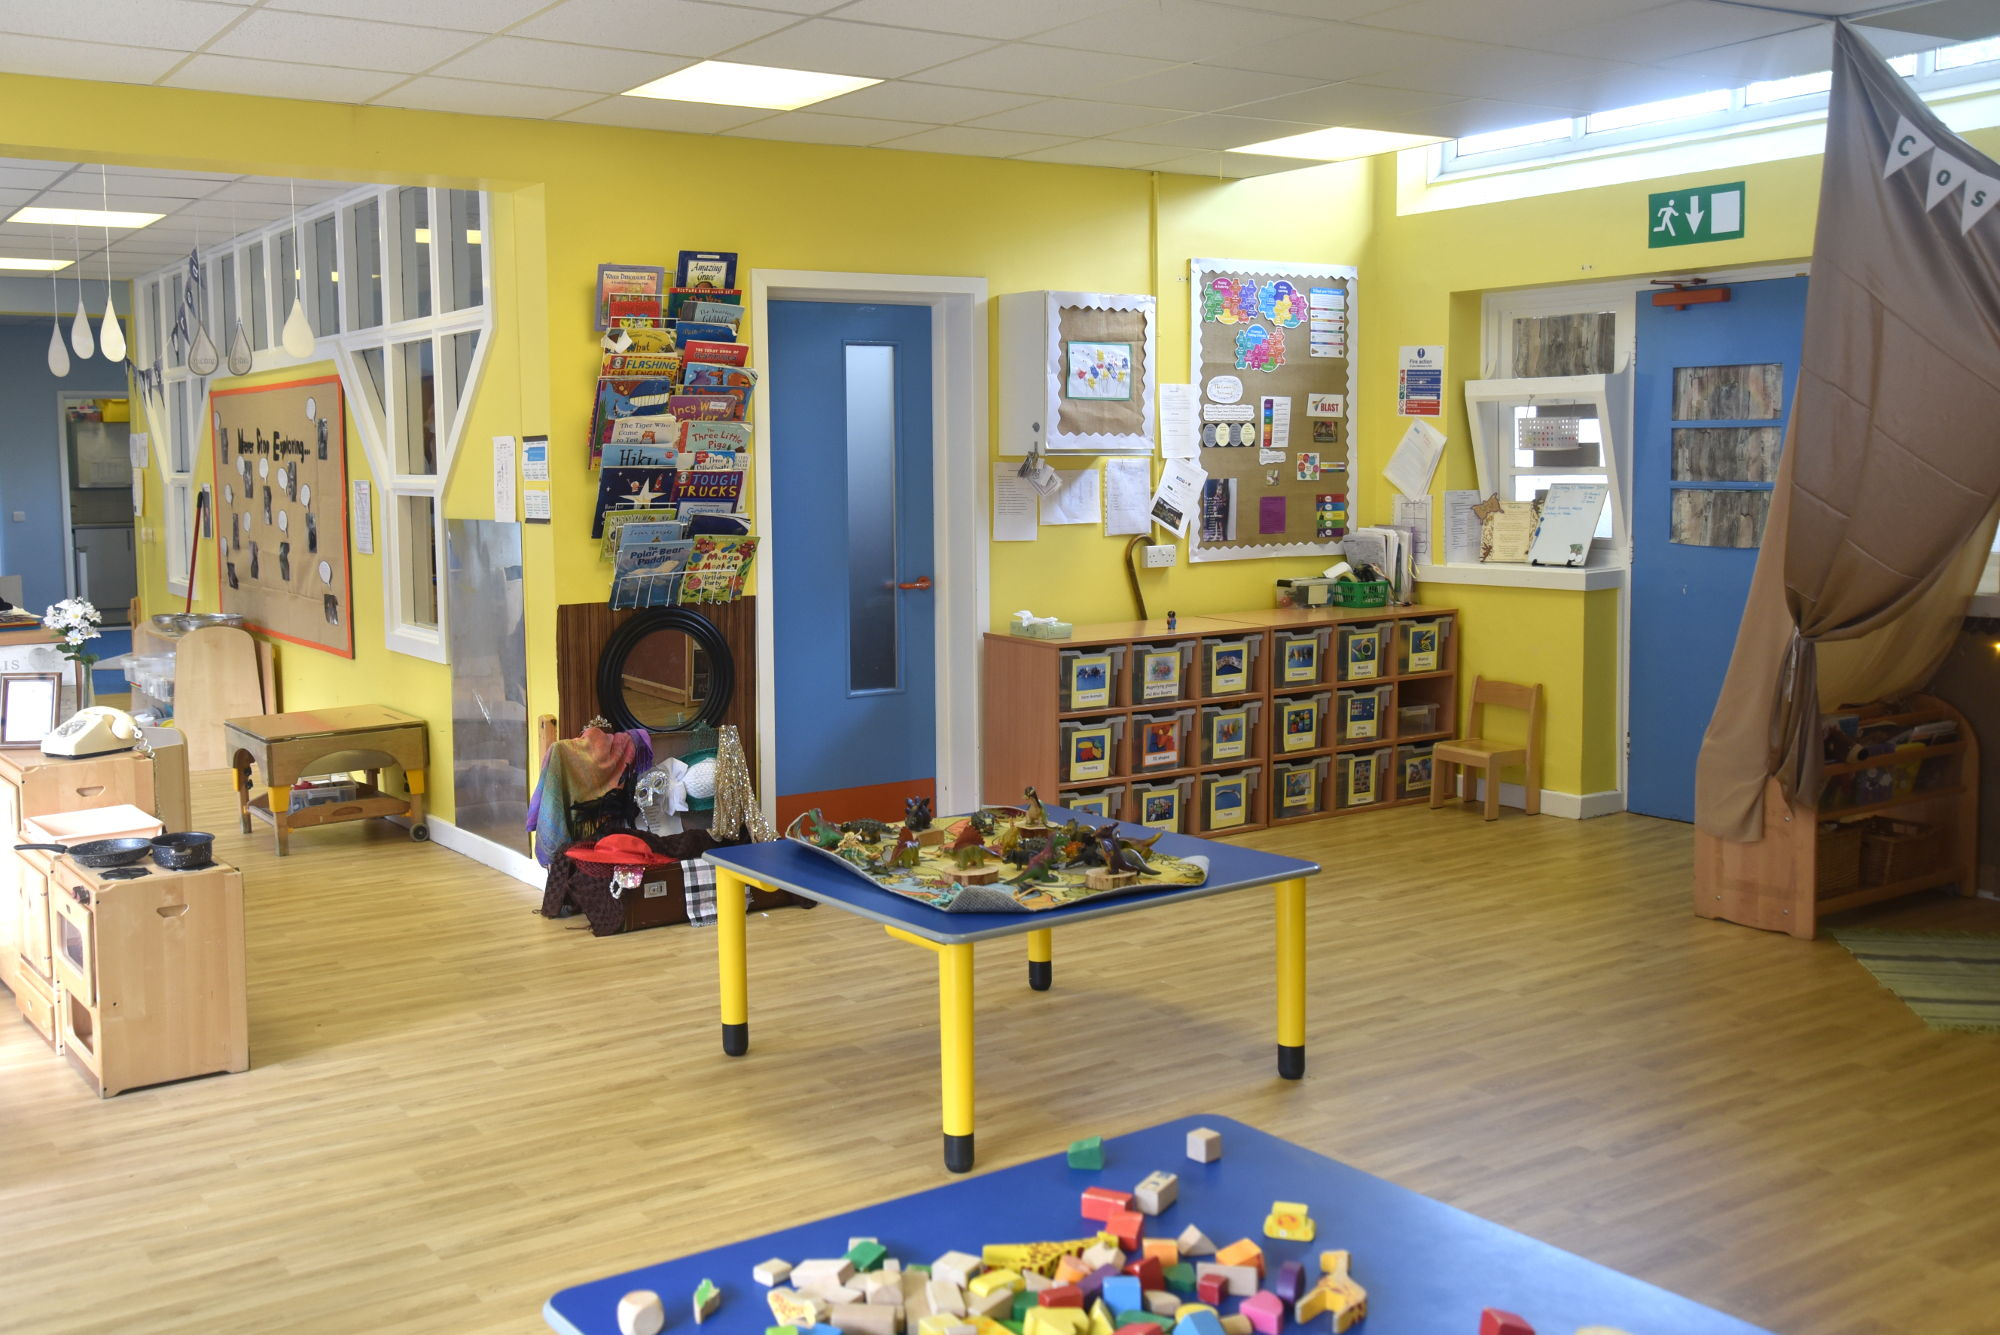 The toddler room at Stainsby